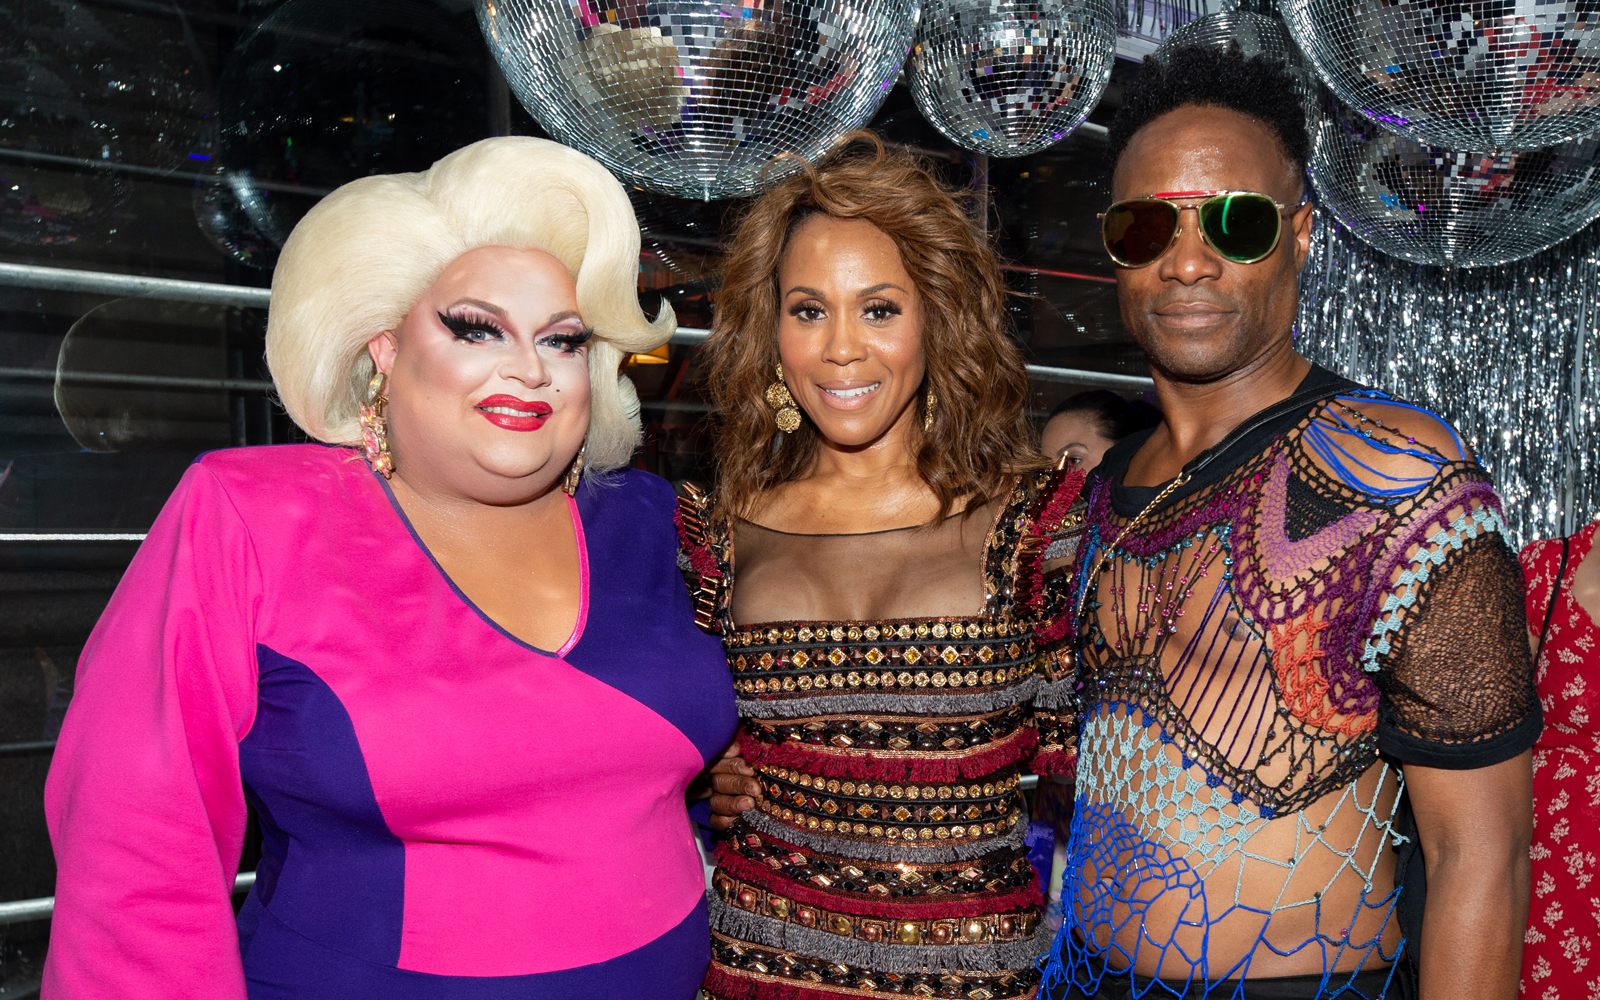 Sir Richard Branson, Billy Porter, Courtney Act, Ginger Minj and Deborah Cox celebrate Pride and announcement of Virgin Voyages LGBTQ+ charter with Atlantis Events